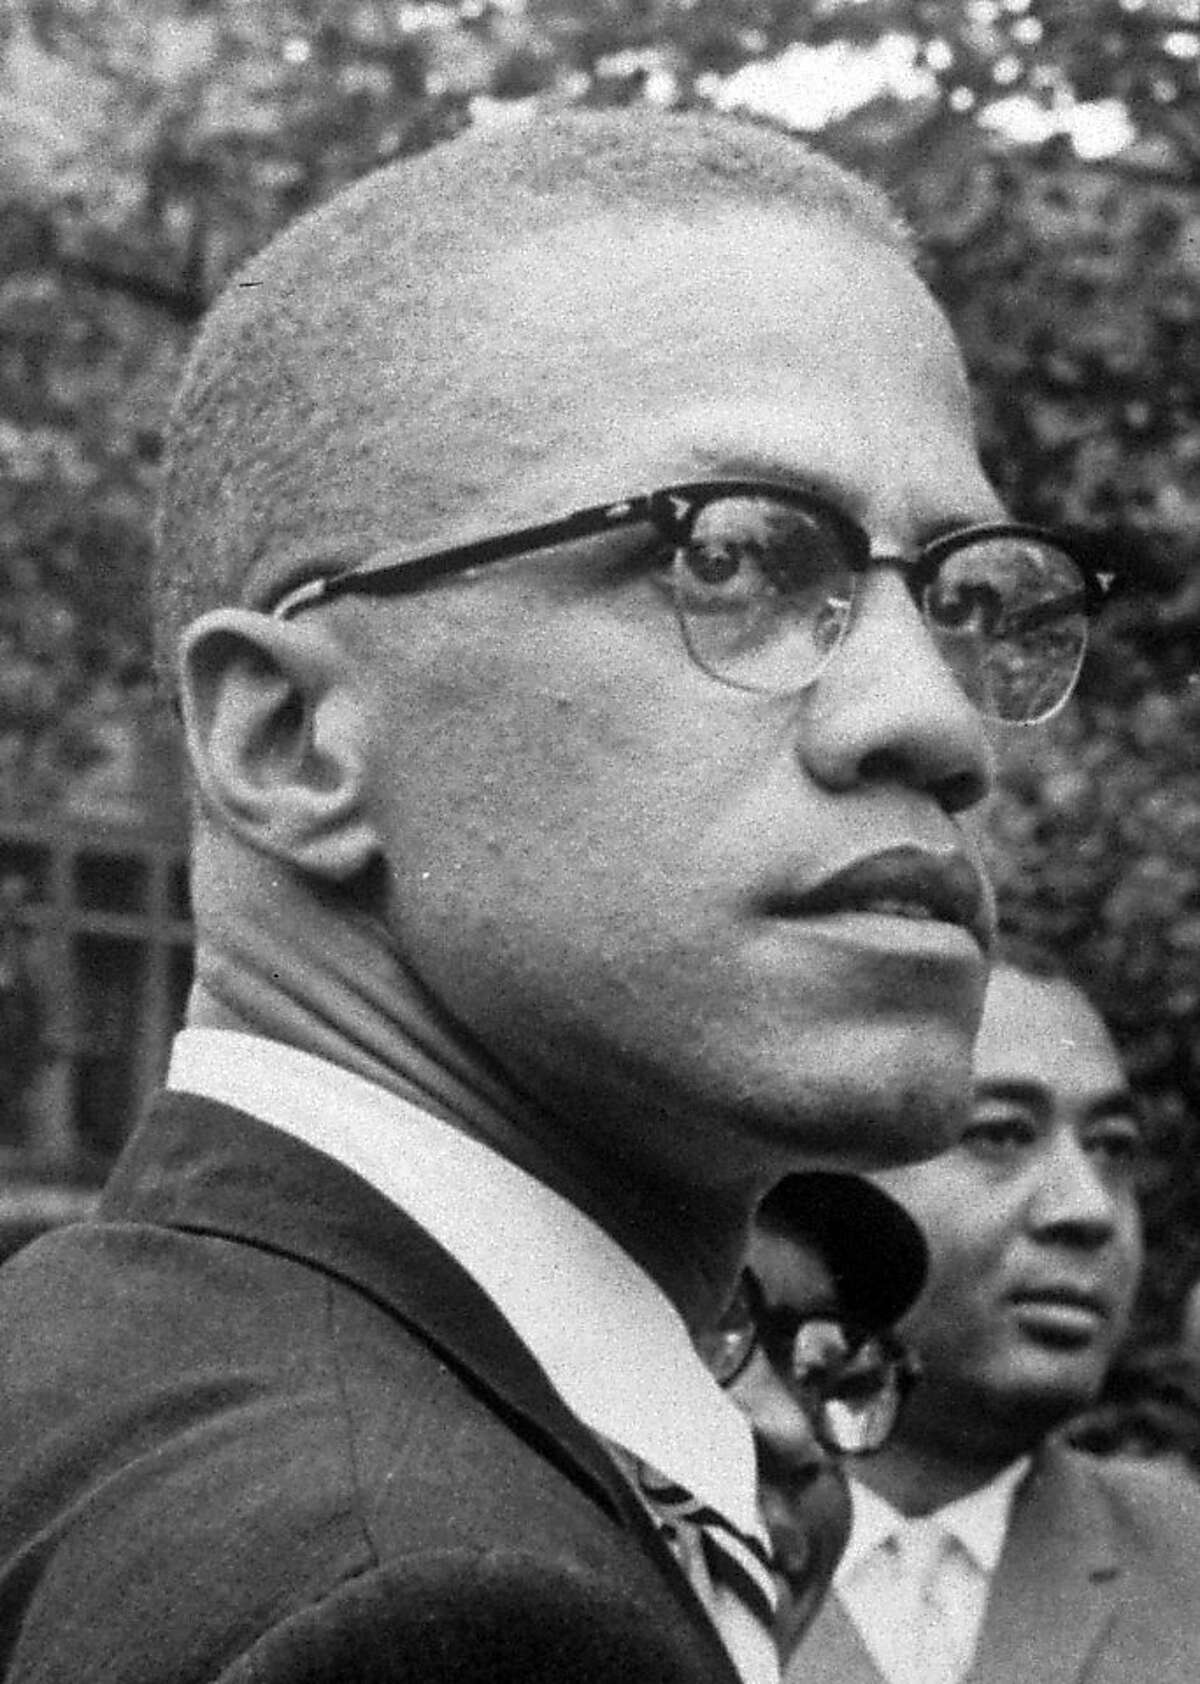 In this 1963 file photo, Black Nationalist leader Malcolm X is pictured at a rally at Lennox Avenue and 115th St., in the Harlem section of New York. The only man to admit shooting Malcolm X has been freed on parole, 45 years after he helped assassinate the civil rights leader in New York City. State Department of Correctional Services spokeswoman Linda Foglia says Thomas Hagan was freed Tuesday, April 27, 2010.